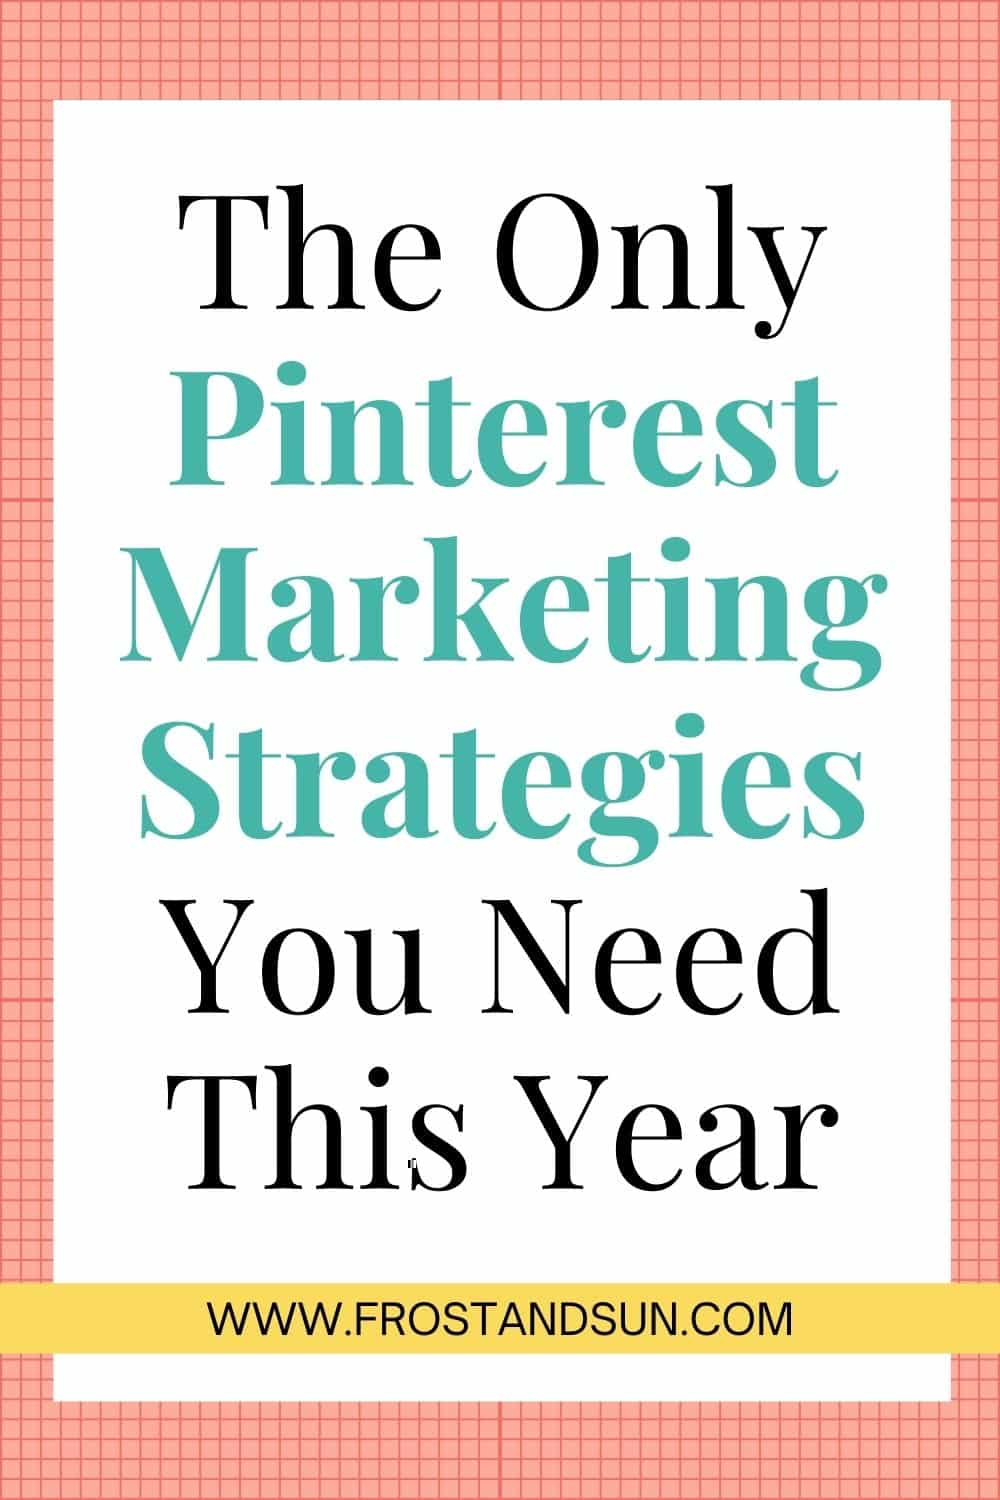 Pinterest Marketing Strategies: 5 Top Tips for Pinterest Success This Year